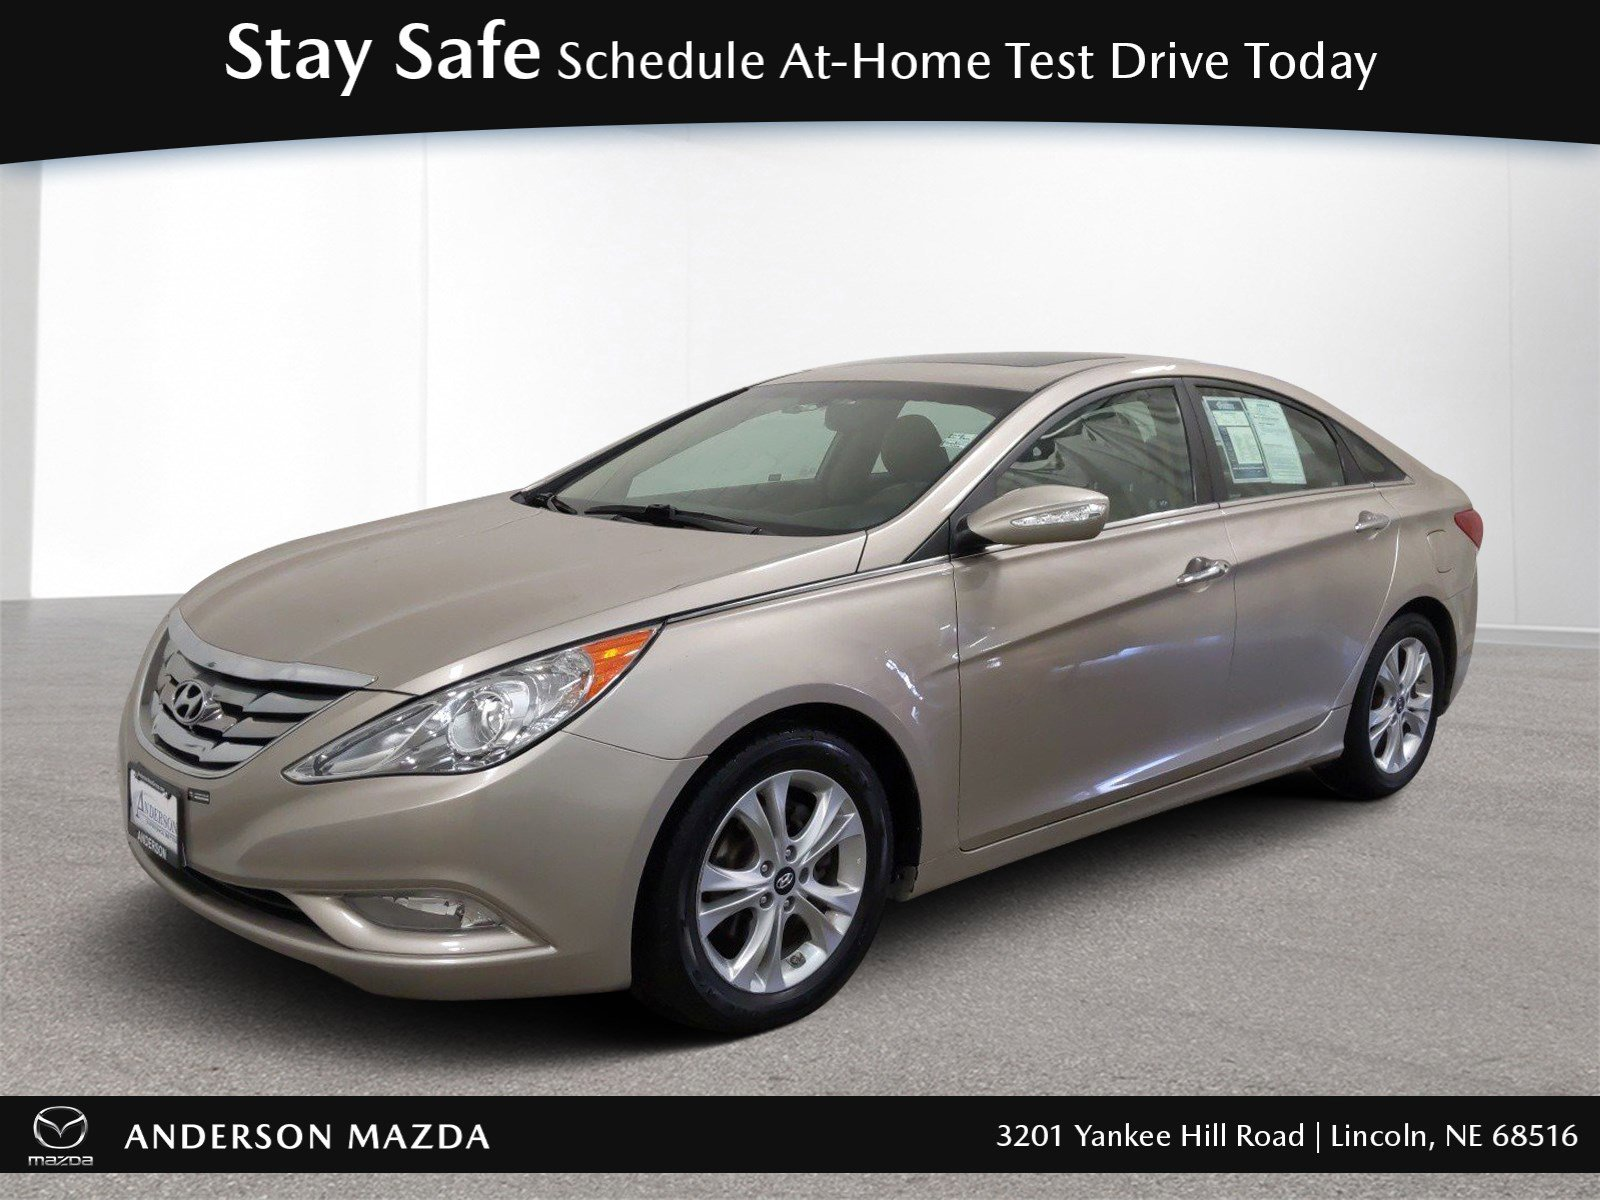 Used 2011 Hyundai Sonata Ltd 4dr Car for sale in Lincoln NE